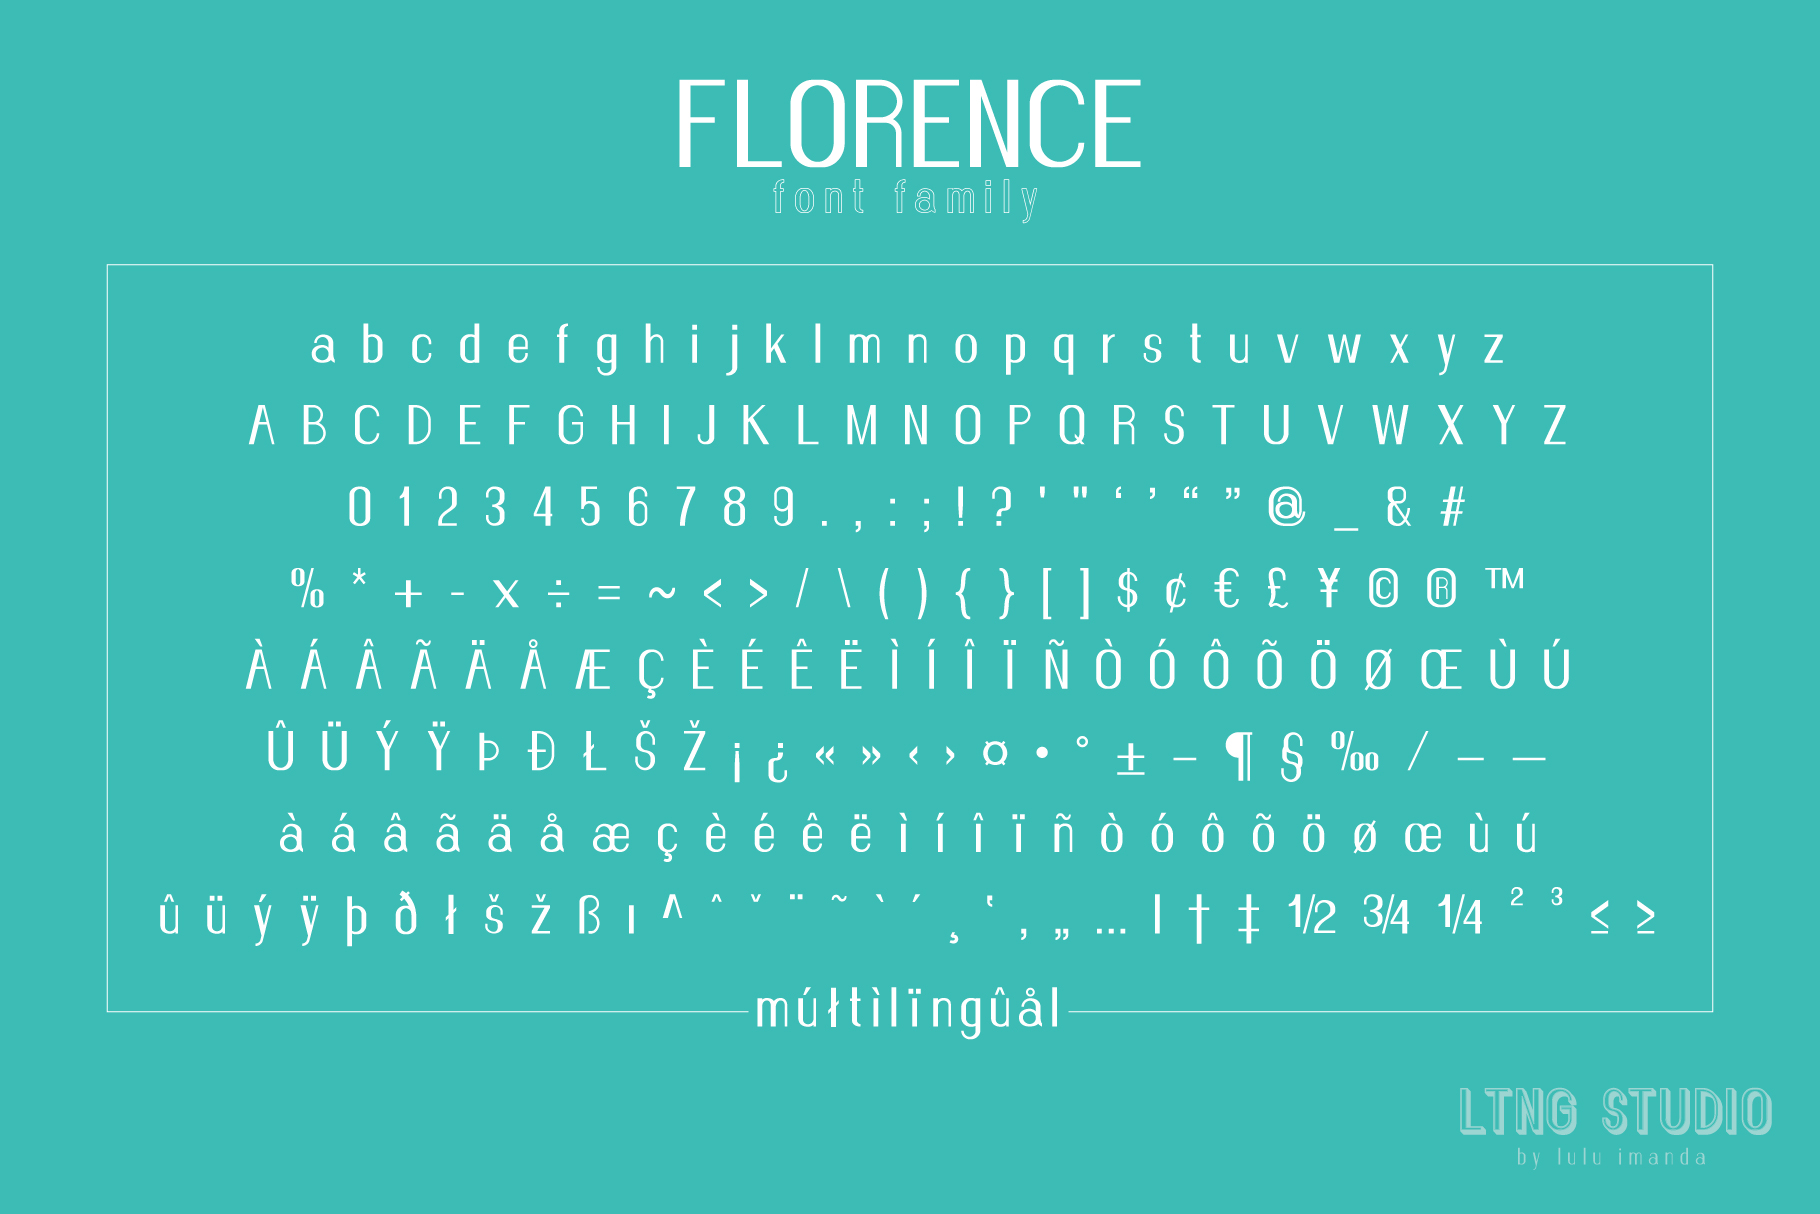 FLORENCE font family example image 3